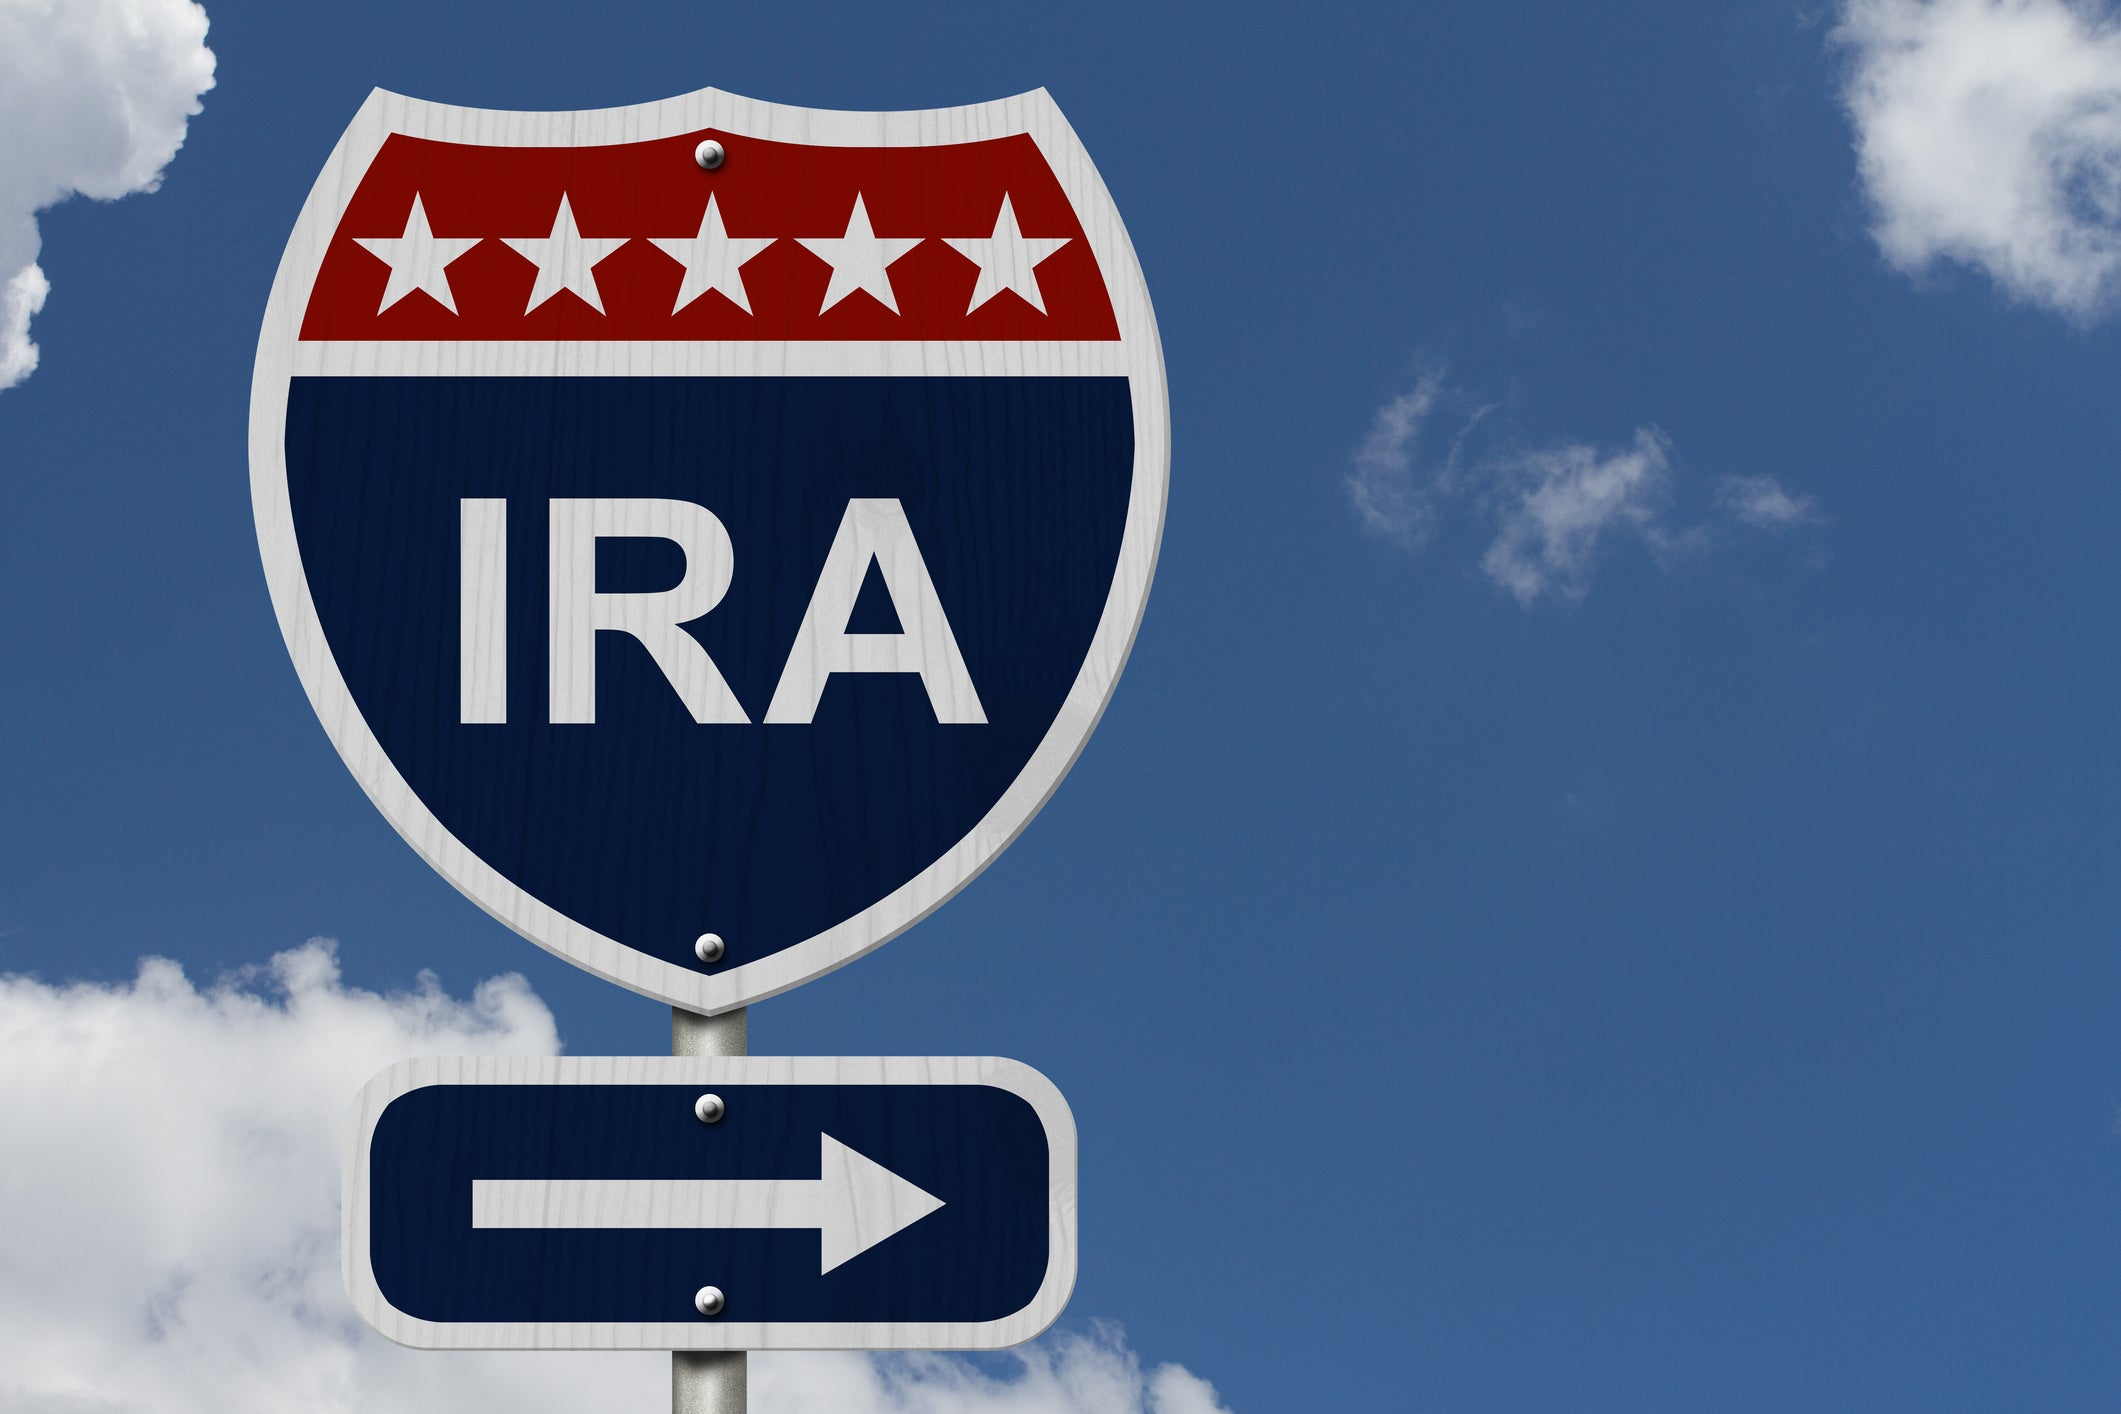 Traditional Ira Contribution Limits In 2018 The Motley Fool